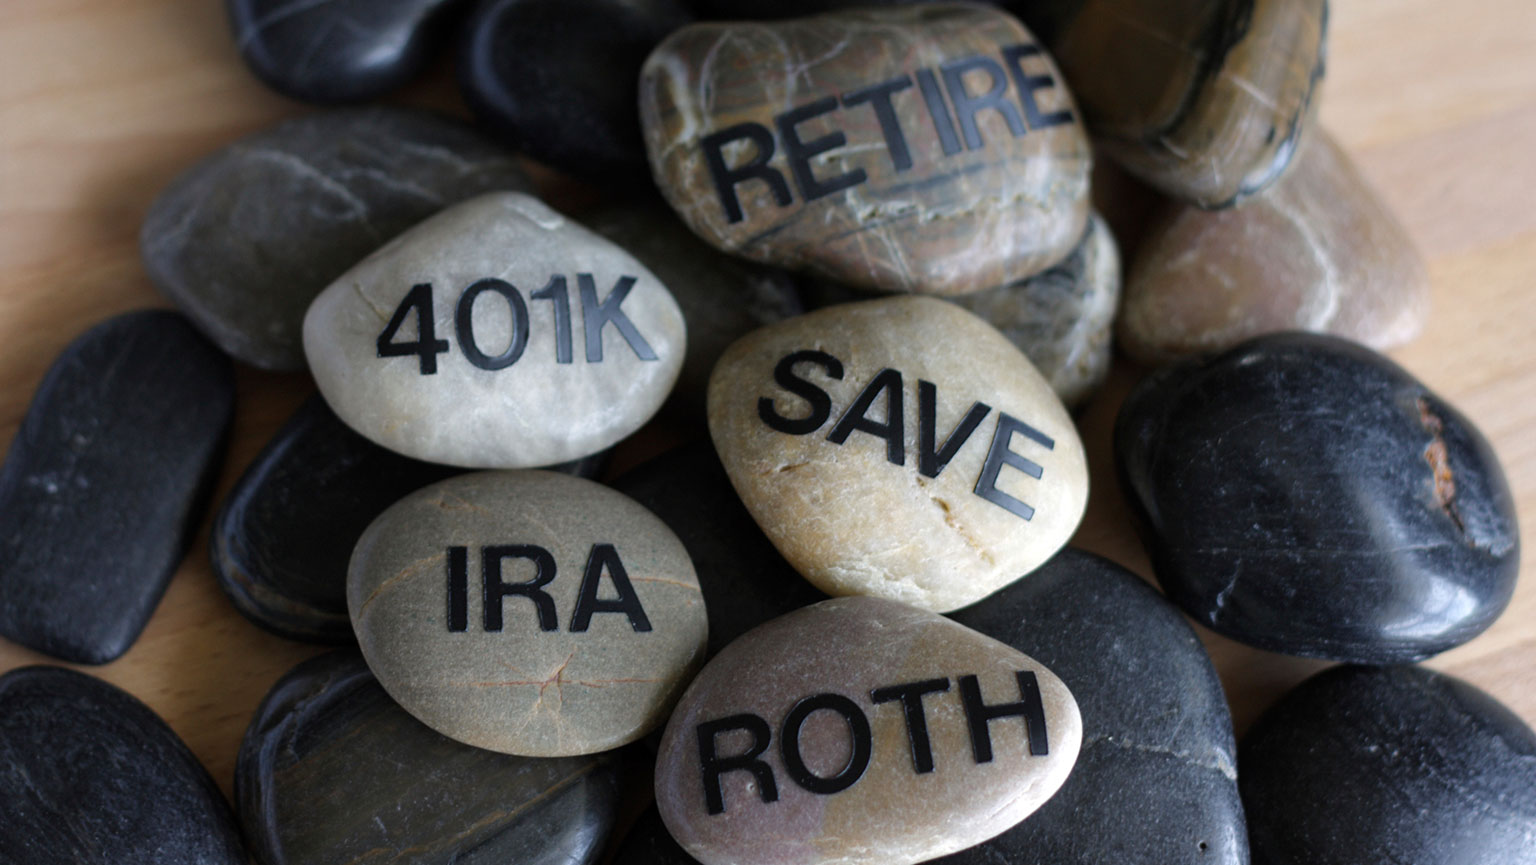 Tax Shelters—Roths, IRAs, and 401(k) Plans